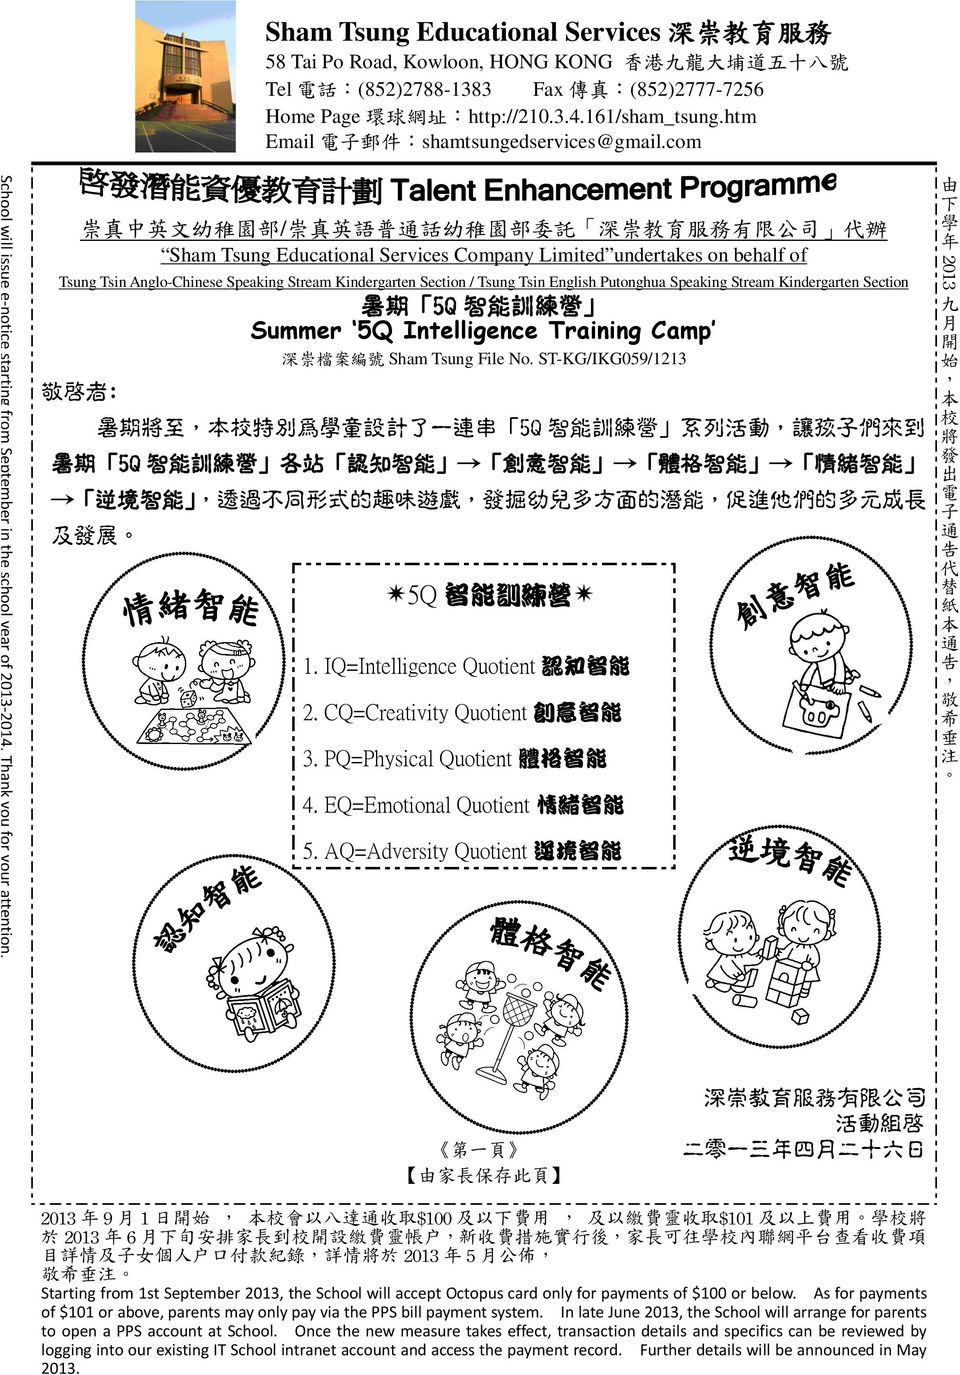 com Tsung Tsin Anglo-Chinese Speaking Stream Kindergarten Section / Tsung Tsin English Putonghua Speaking Stream Kindergarten Section 暑期 5Q 智能訓練營 Summer 5Q Intelligence Training Camp 深崇檔案編號 Sham